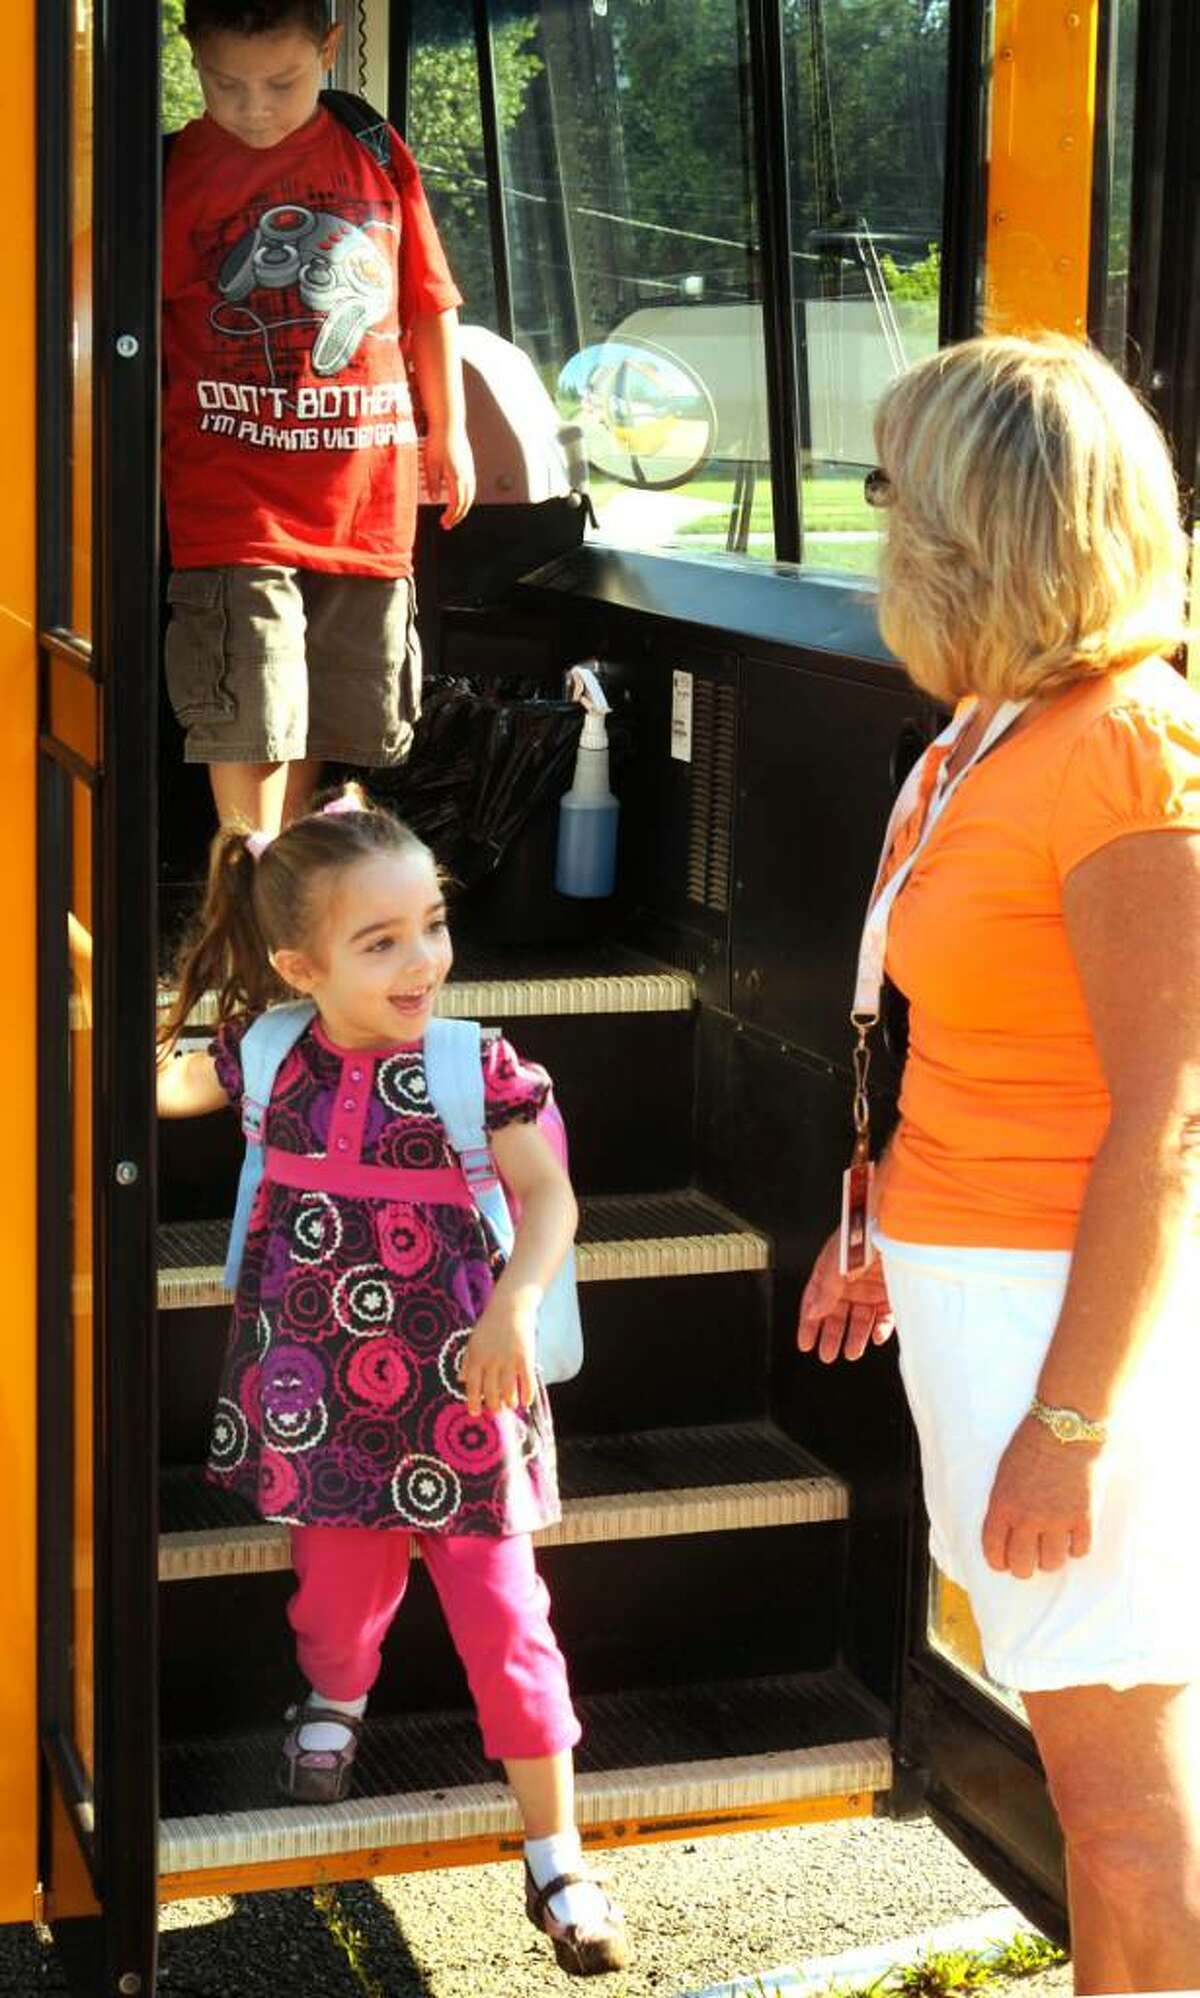 Kindergarten student Felicia Crowley greets para-educator Lori Corsak as she steps off the bus for the first day of school at John Pettibone School in New Milford on Aug. 26, 2009.